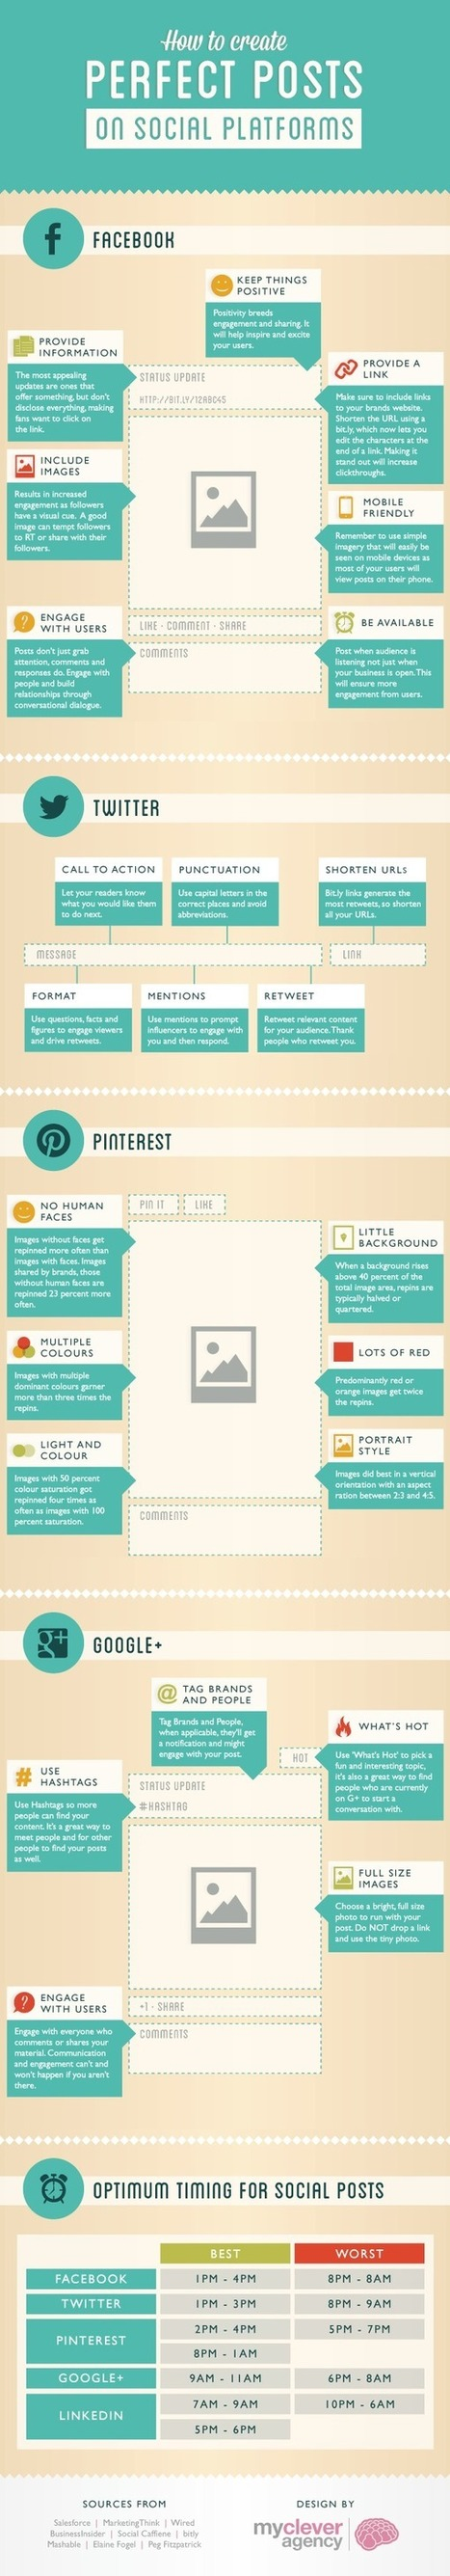 How to Create the Perfect Post on Social Media [INFOGRAPHIC] | DashBurst | Community Manager | Scoop.it